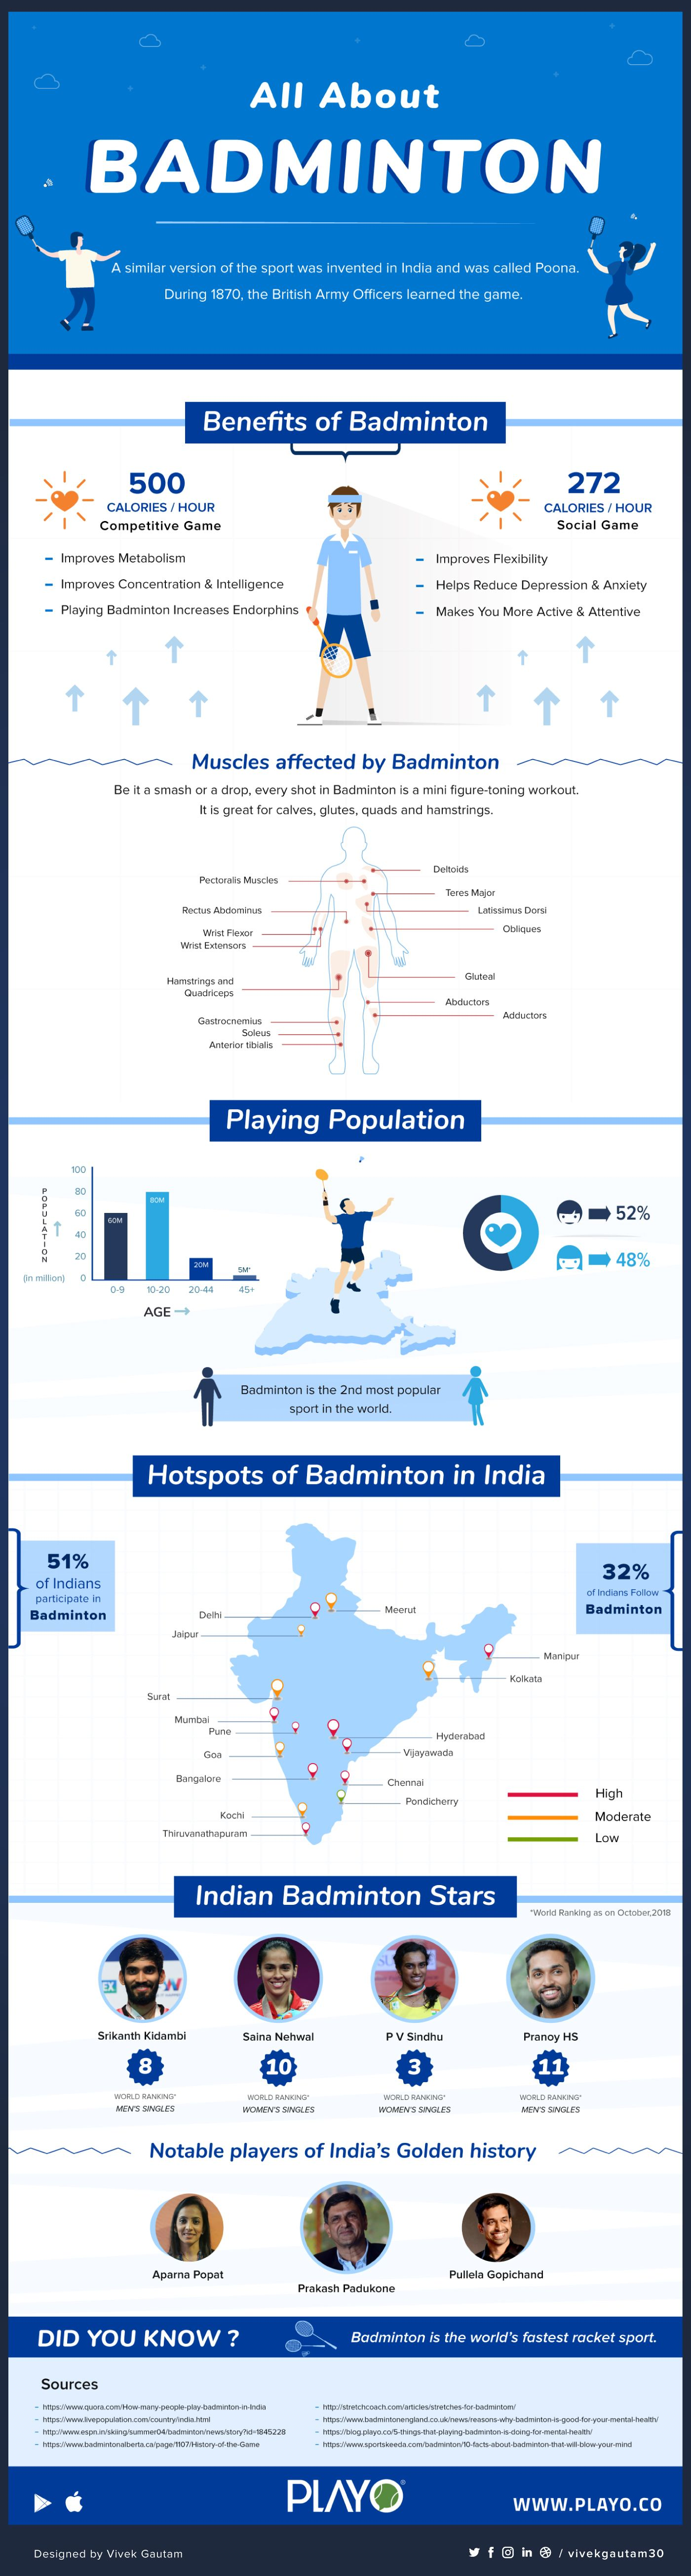 Badminton Is One Of The Sports That Is Now Most Popular Among The Youth And People Have Started Playing This Sport More Now Badminton Infographic Burn Calories